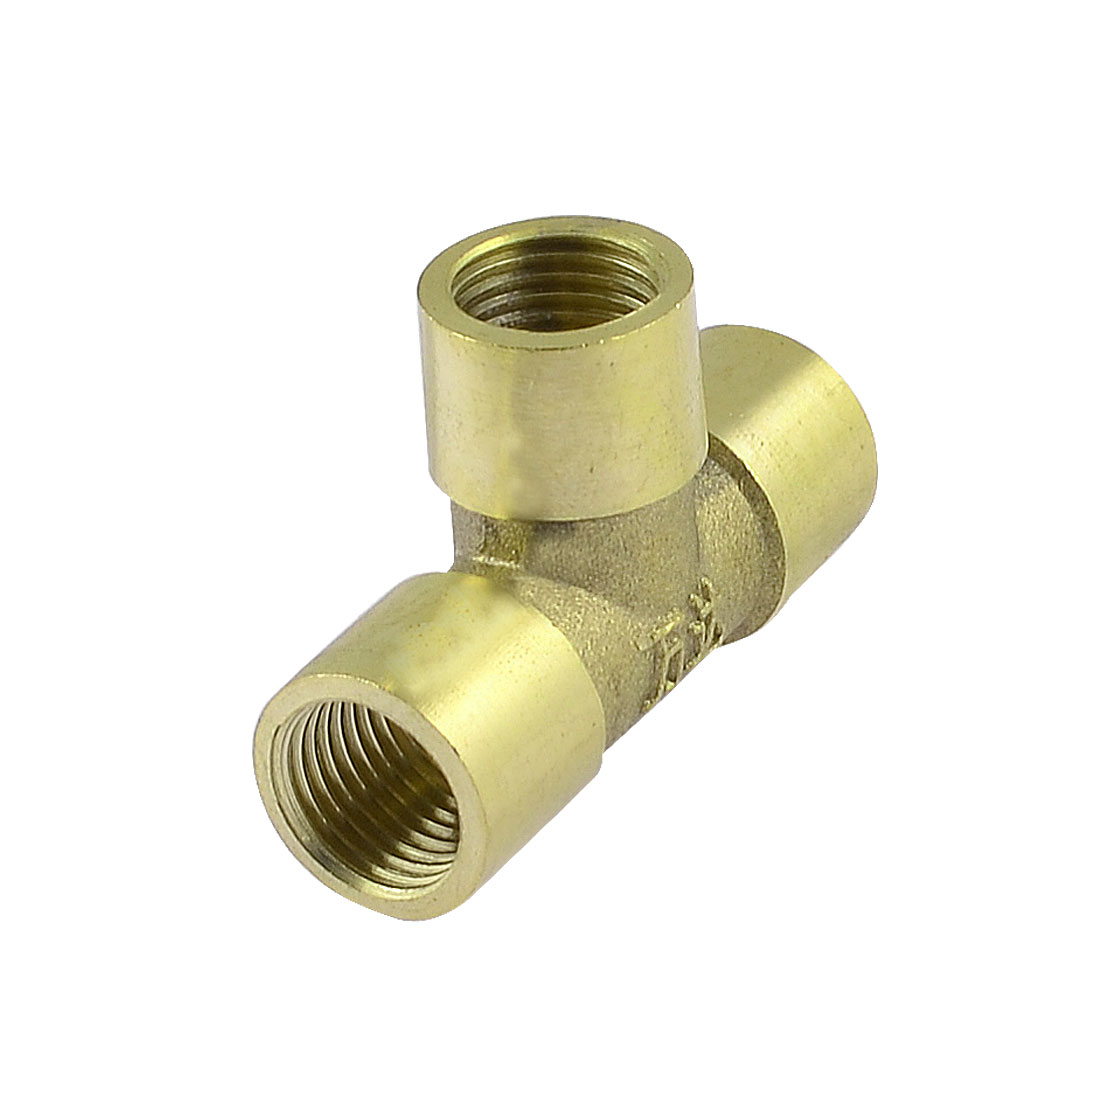 "Brass 1/4"" PT Female Thread 3 Ways T Shape Pneumatic Quick Connector Coupler"